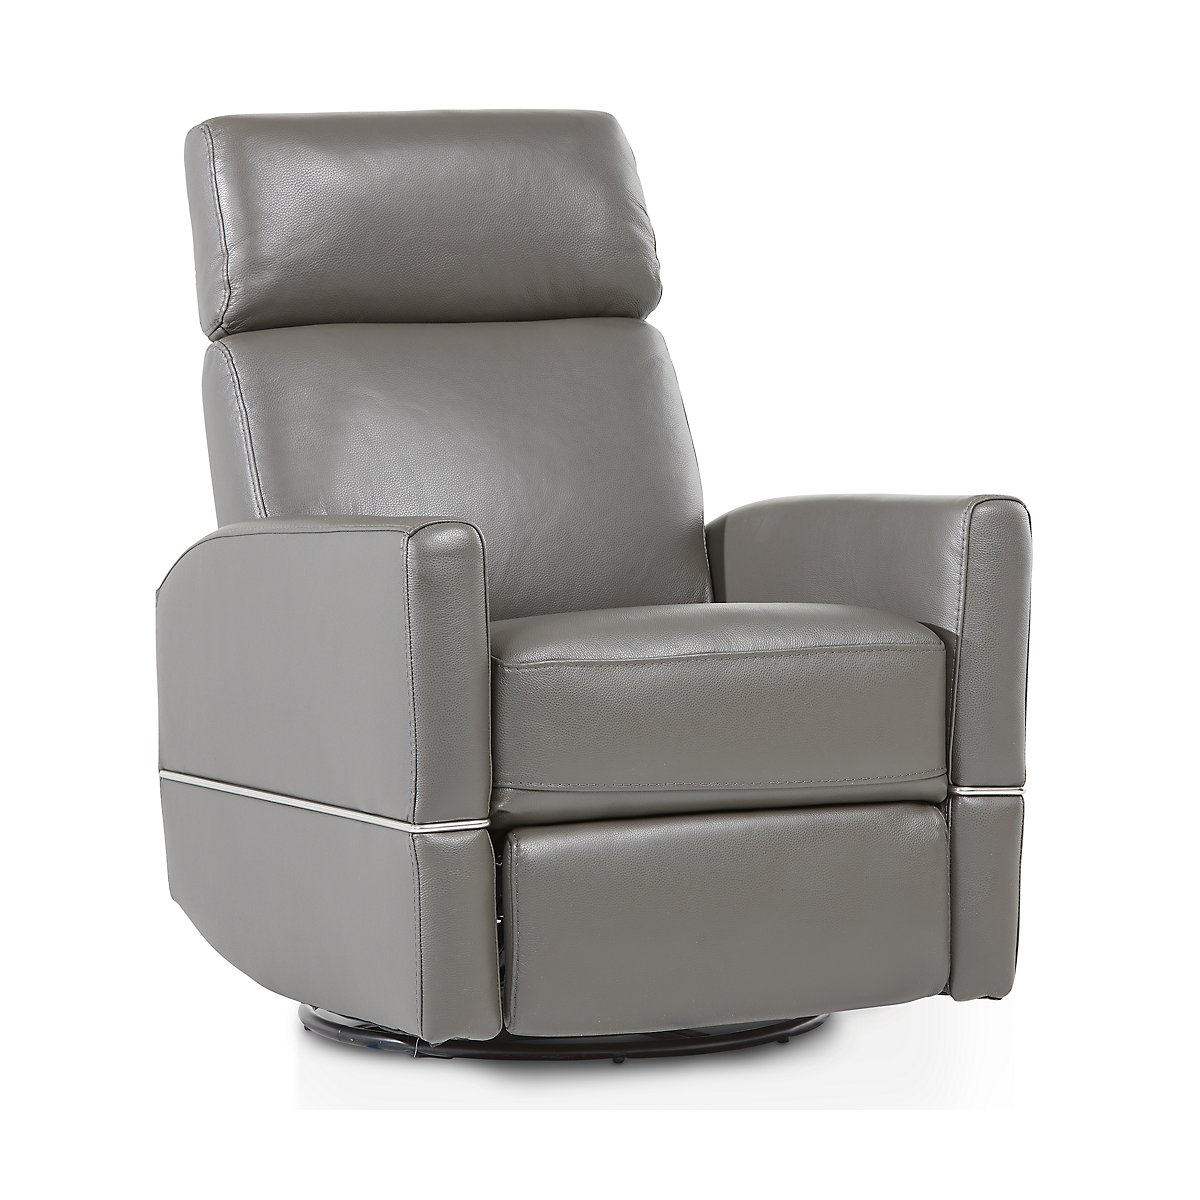 Cato Gray Leather Swivel Glider Recliner Living Room Recliners City Furniture